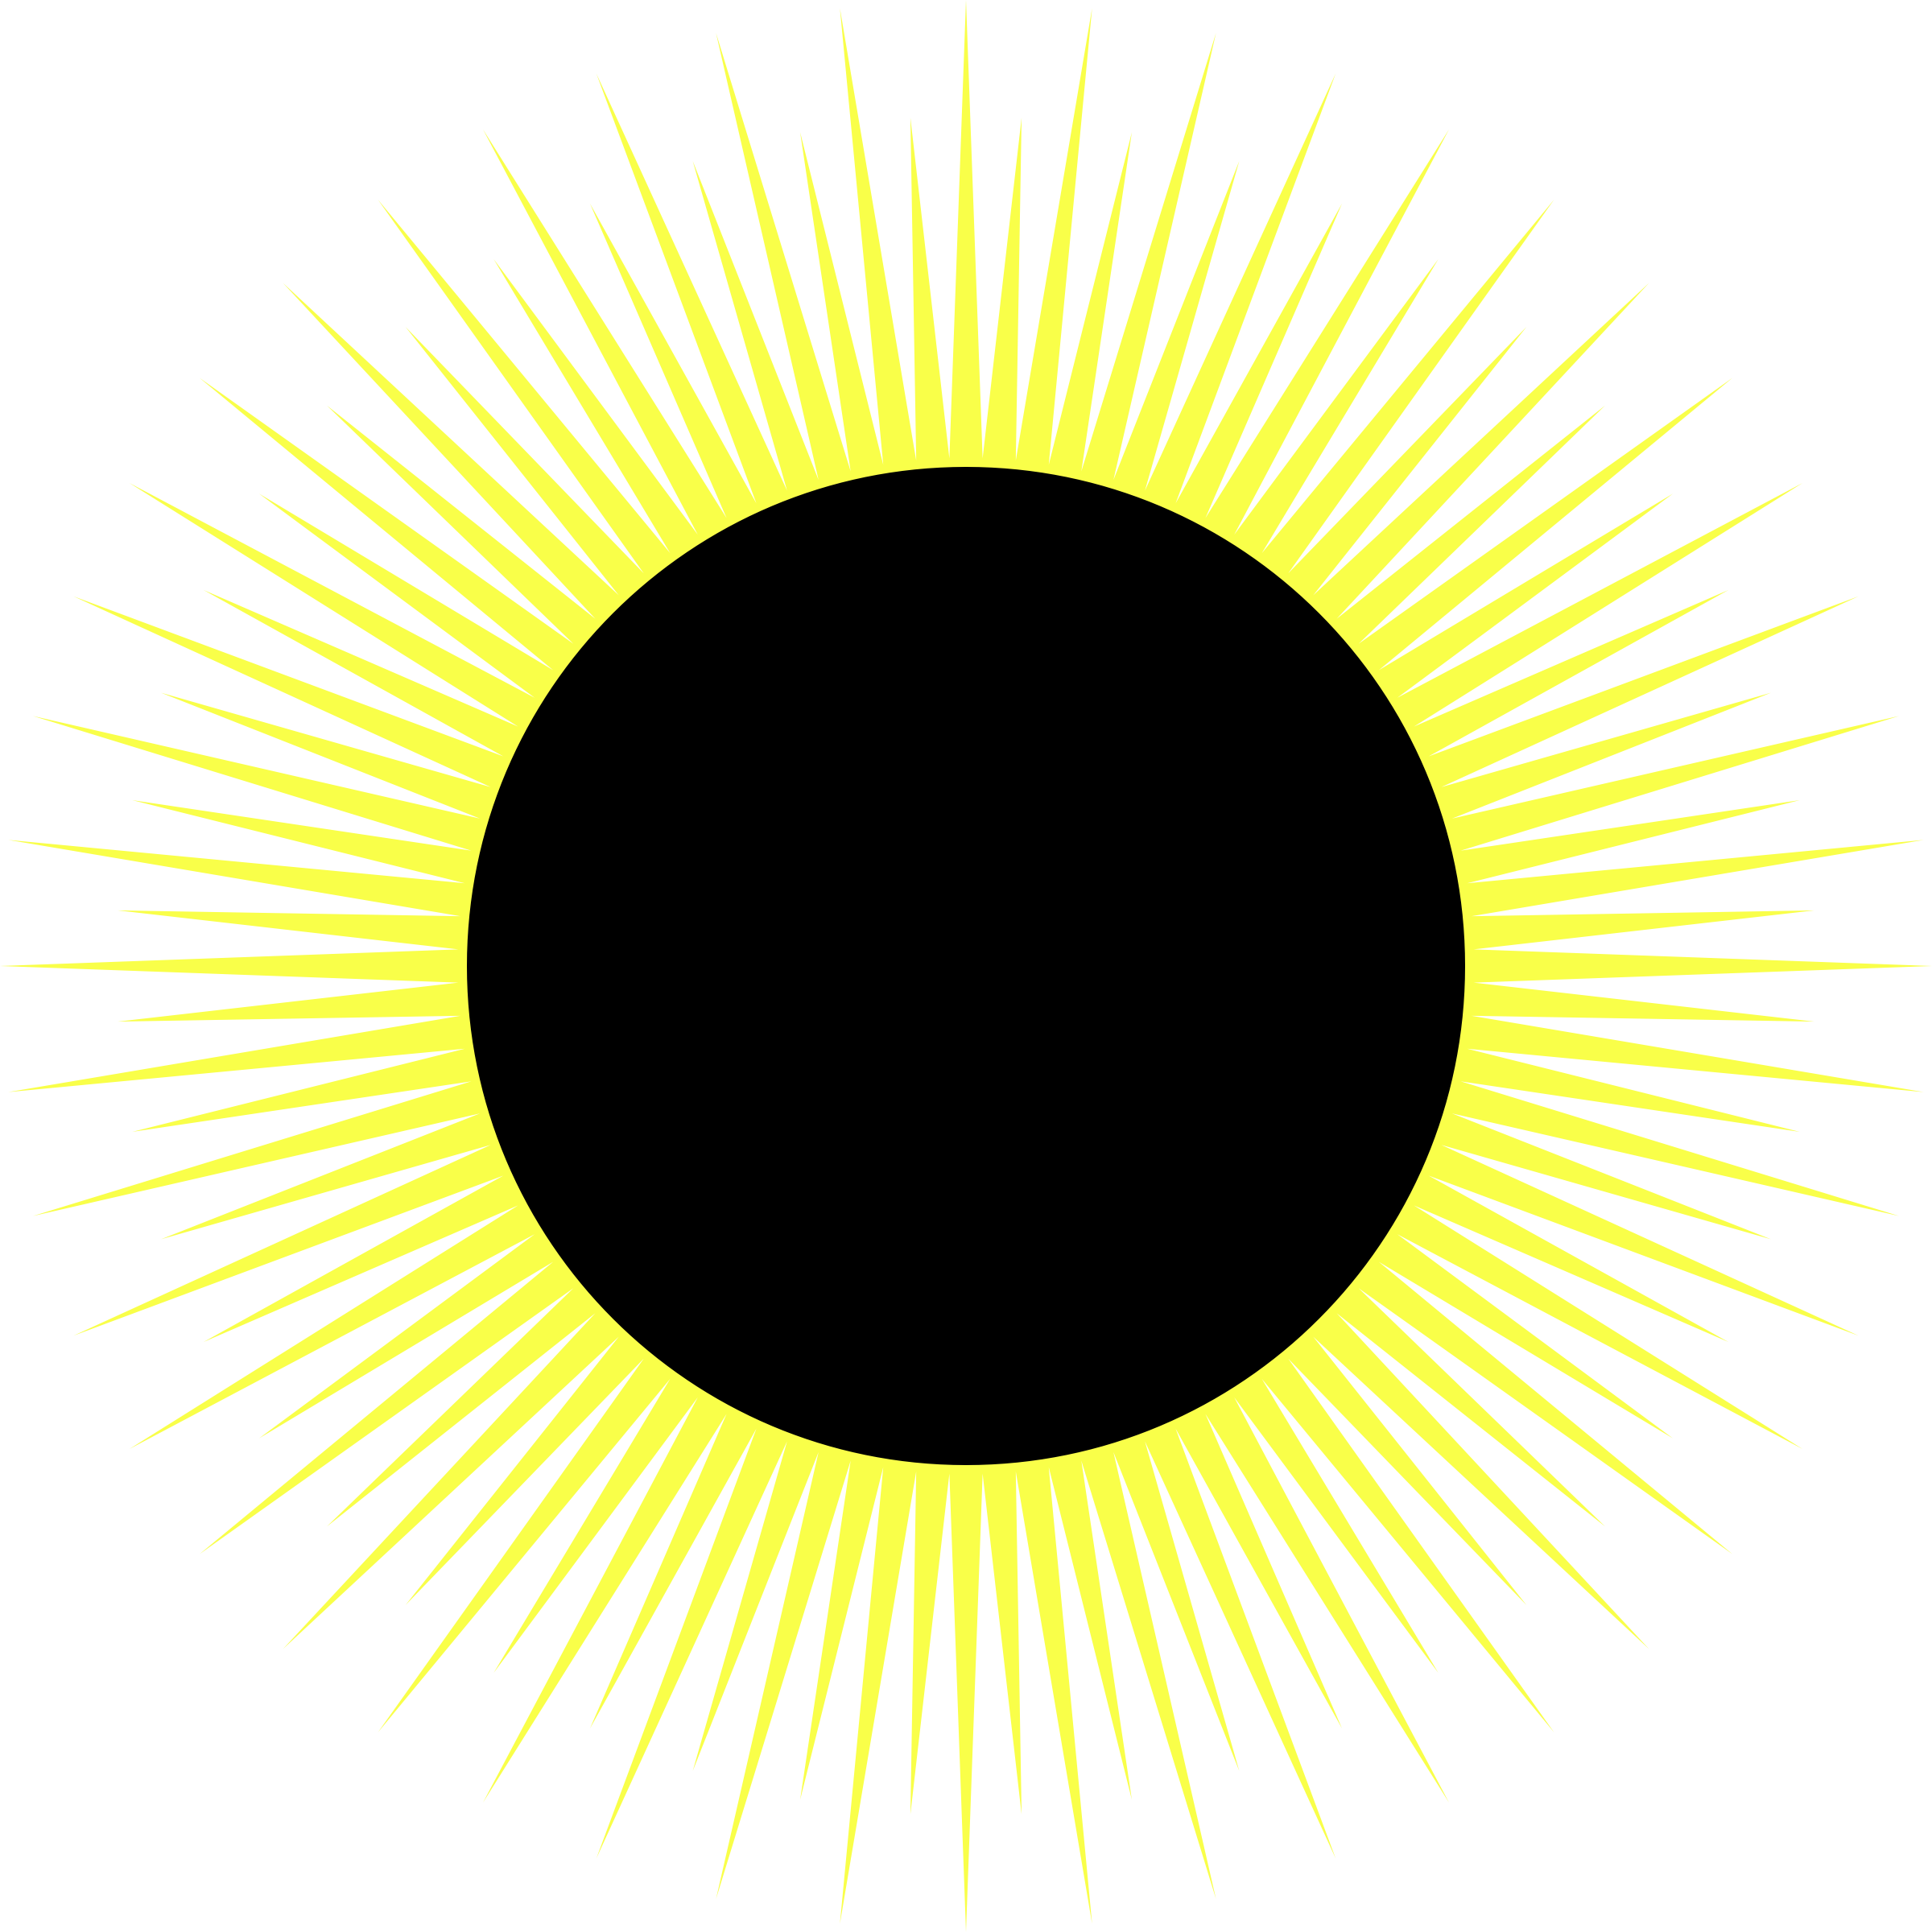 Solar sun clipart vector royalty free library Clipart - Solar Eclipse vector royalty free library